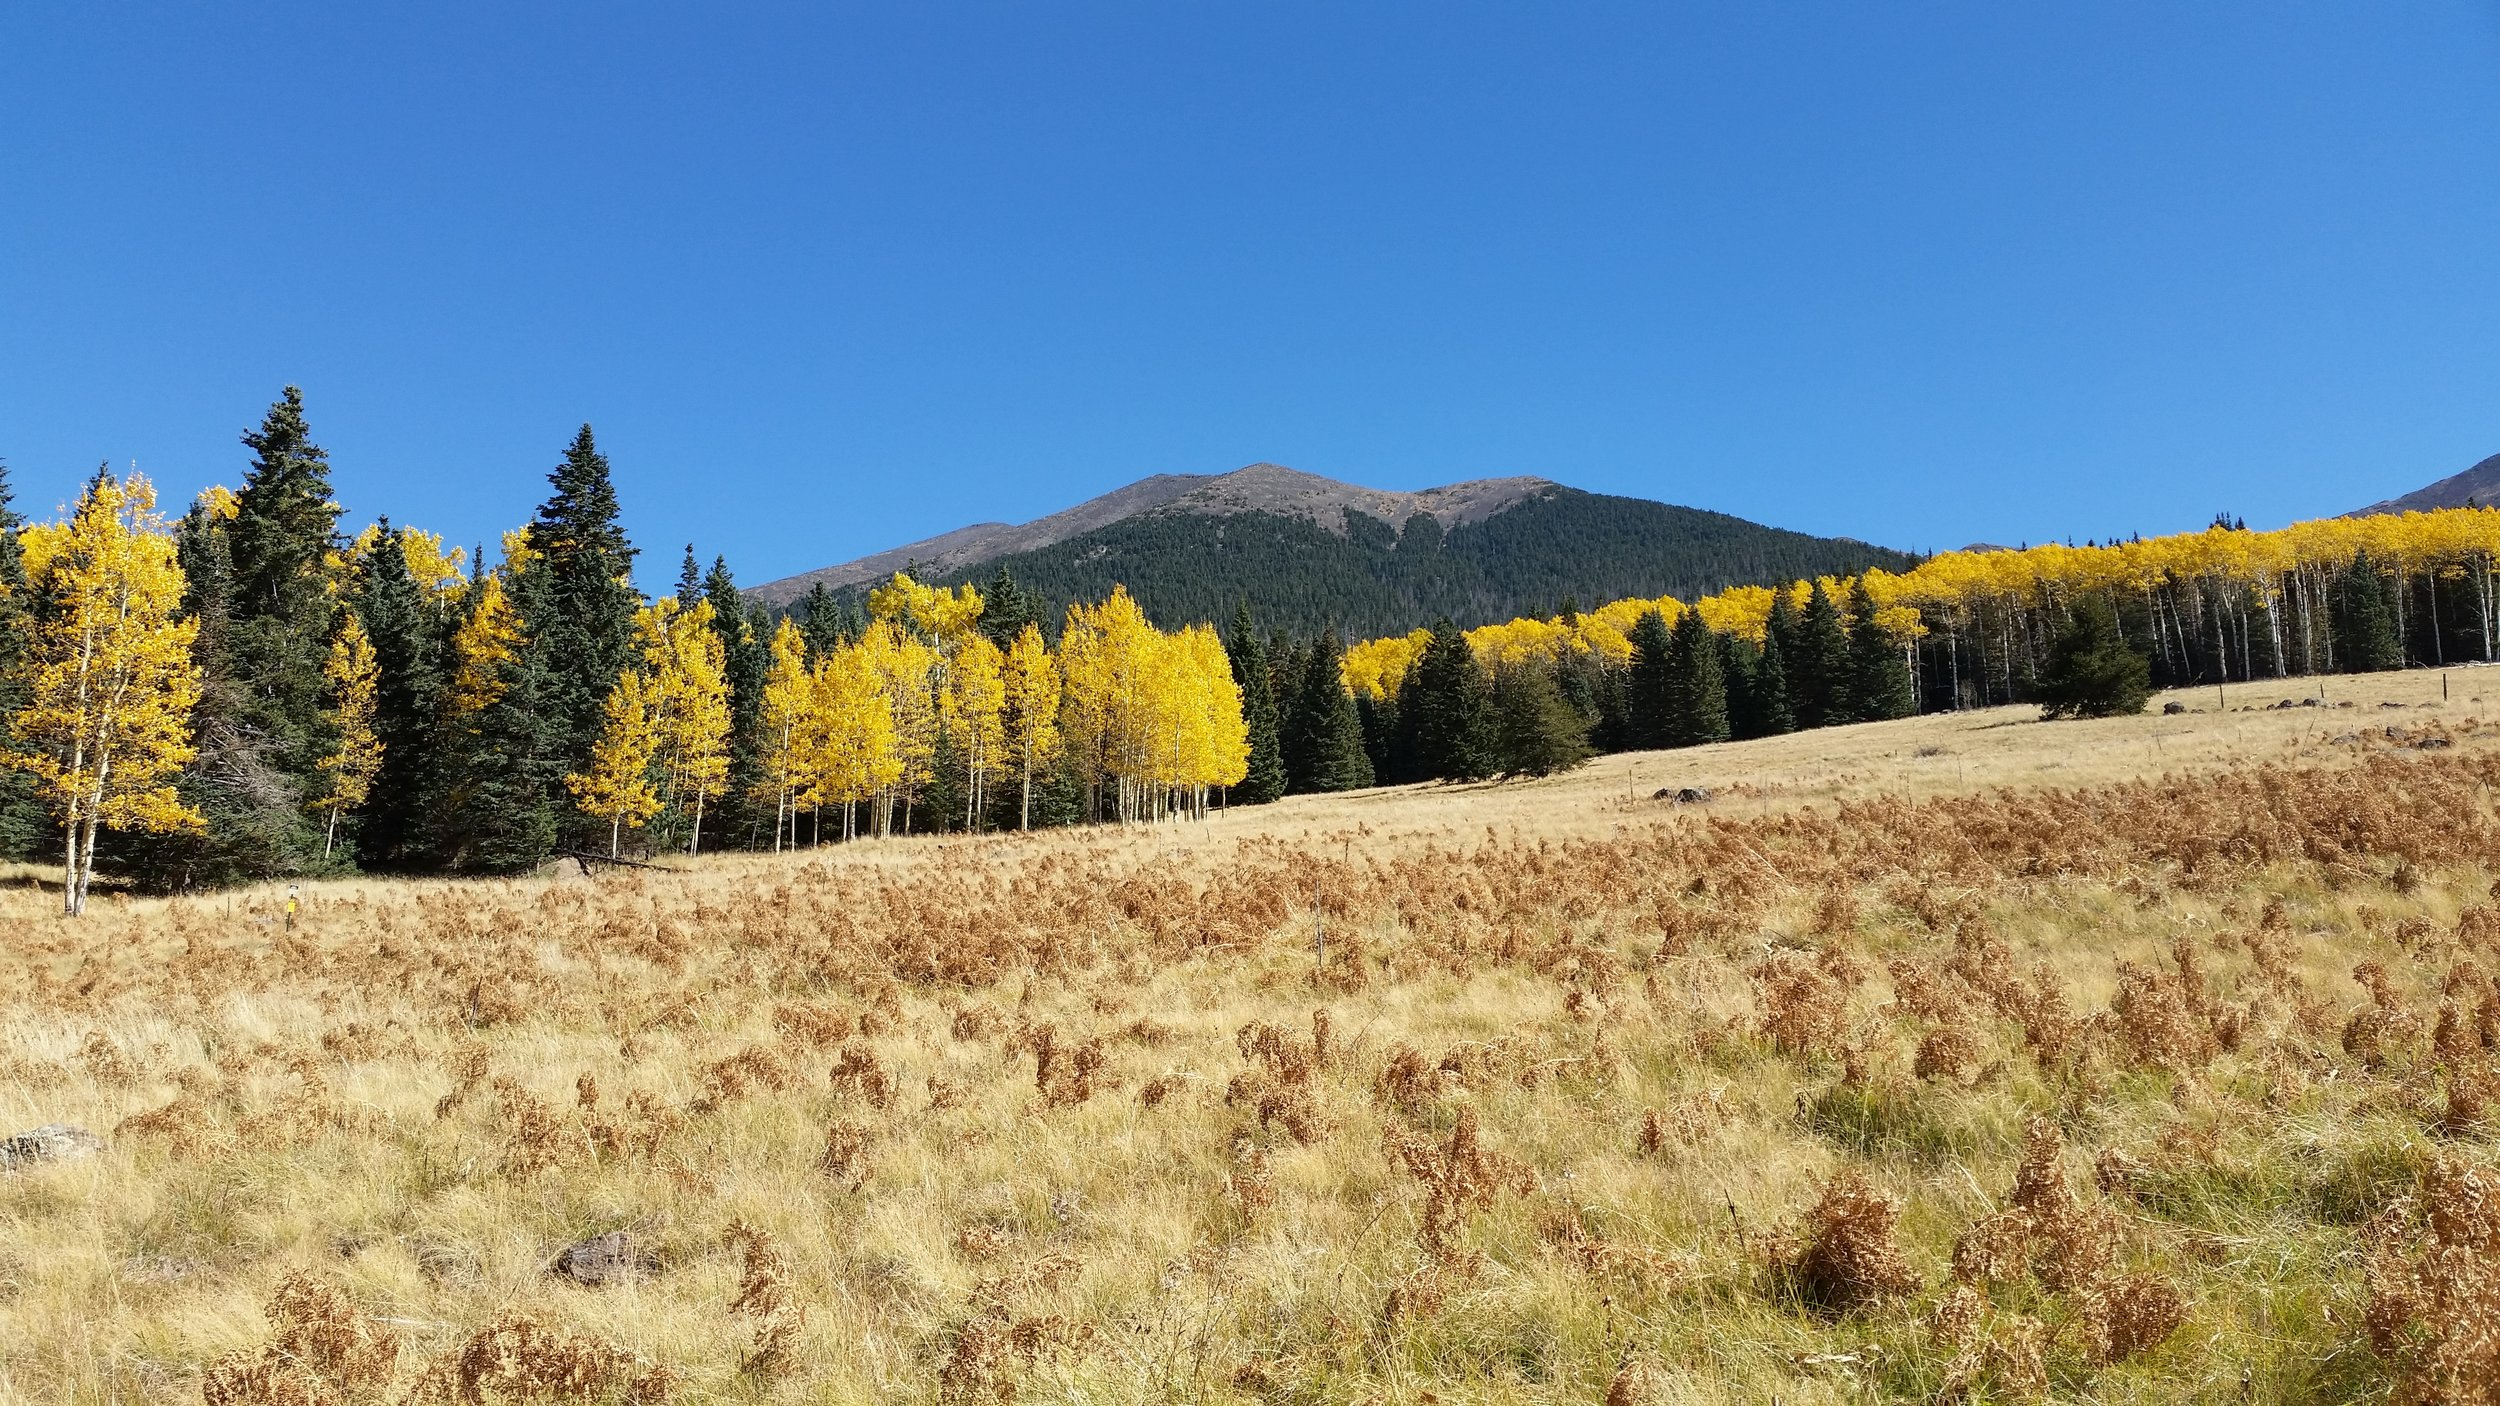 The 12,633' San Francisco Peaks seen from the west at the Arizona Snowbowl.